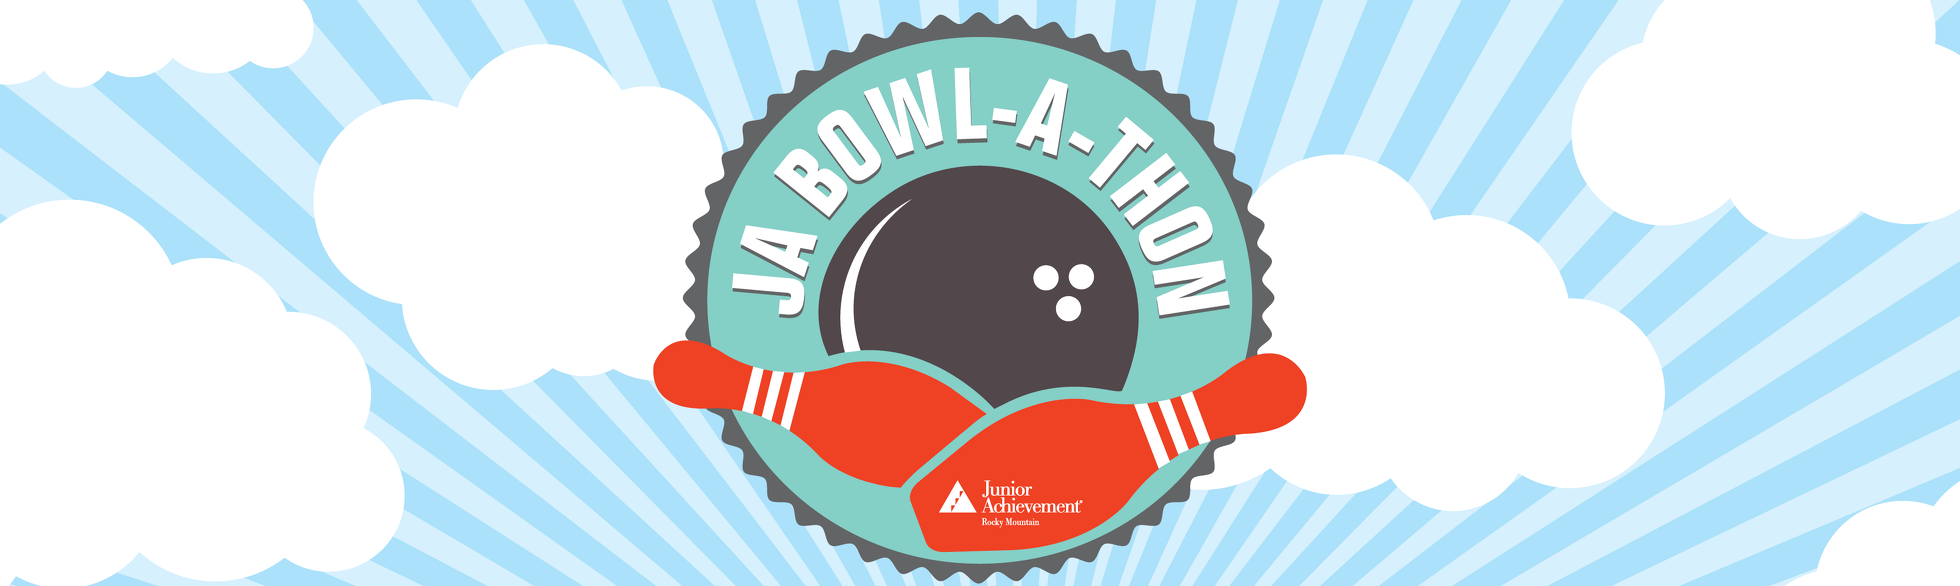 Vail Valley JA Bowl-A-Thon 2018